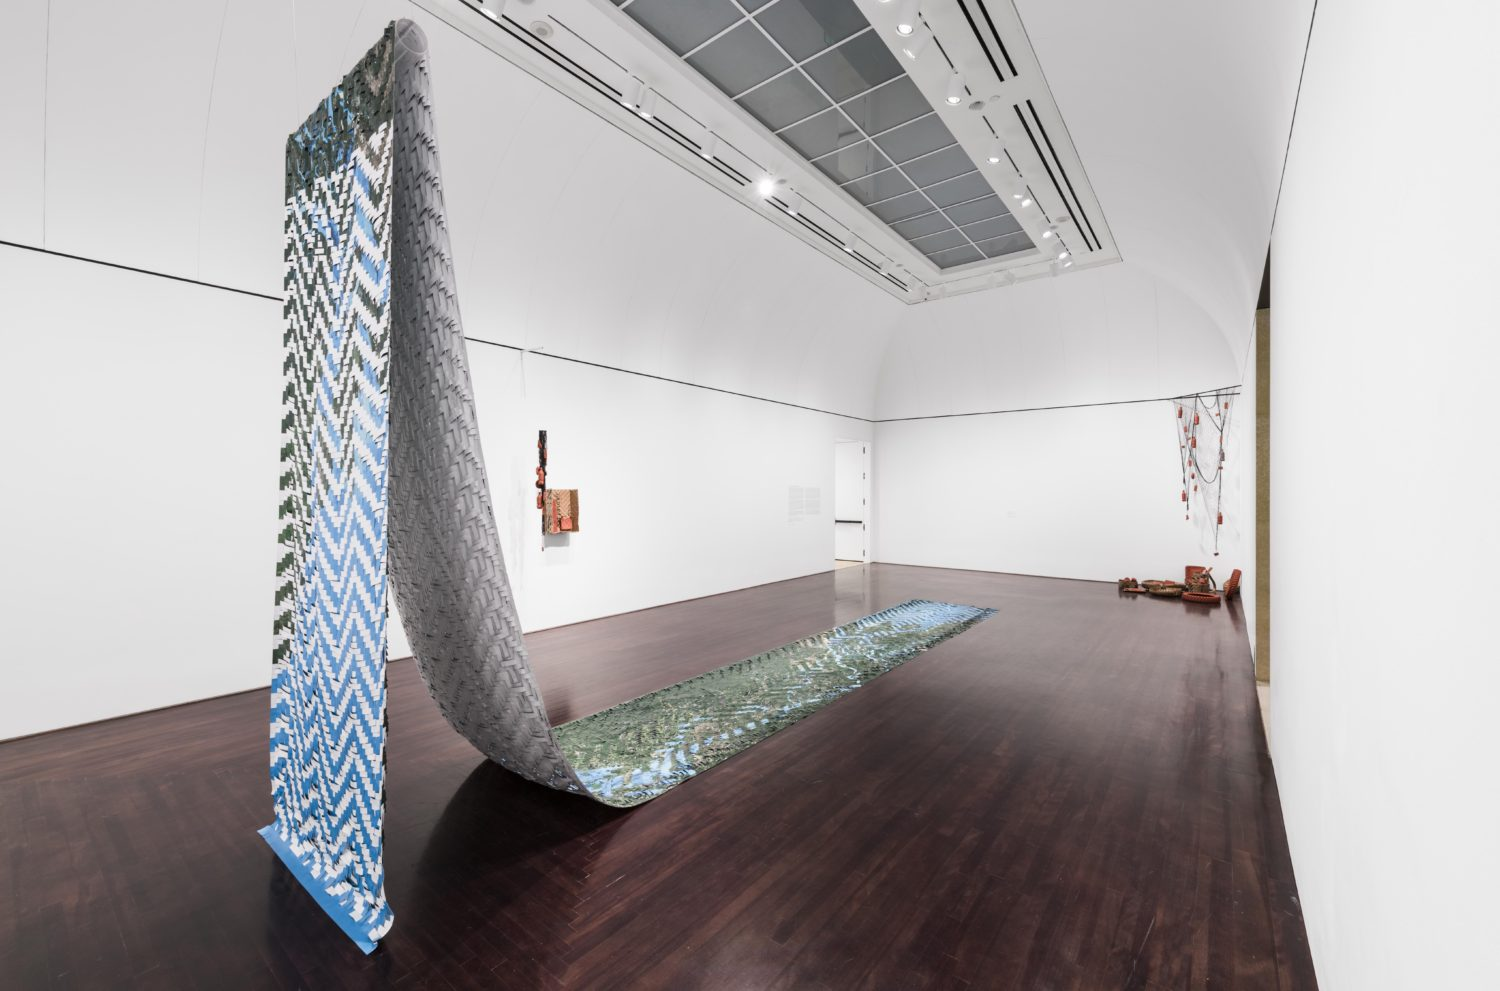 """Artwork by Clarissa Tossin, titled """"Meeting of Waters"""", a fifty-foot woven tapestry that depicts the confluence of two rivers"""